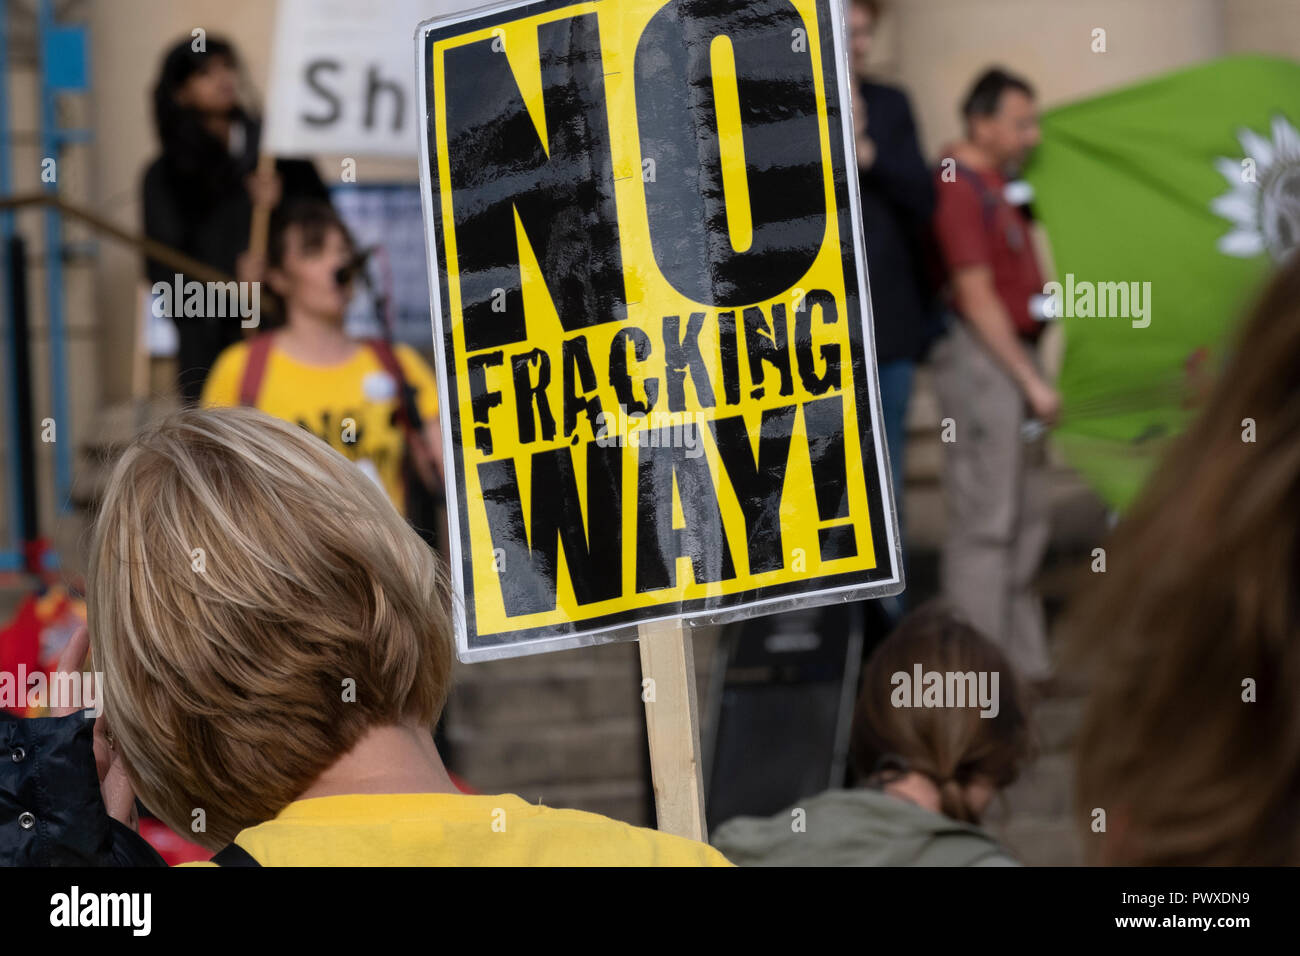 Fracking protest, peaceful protestor holding placard - Stock Image